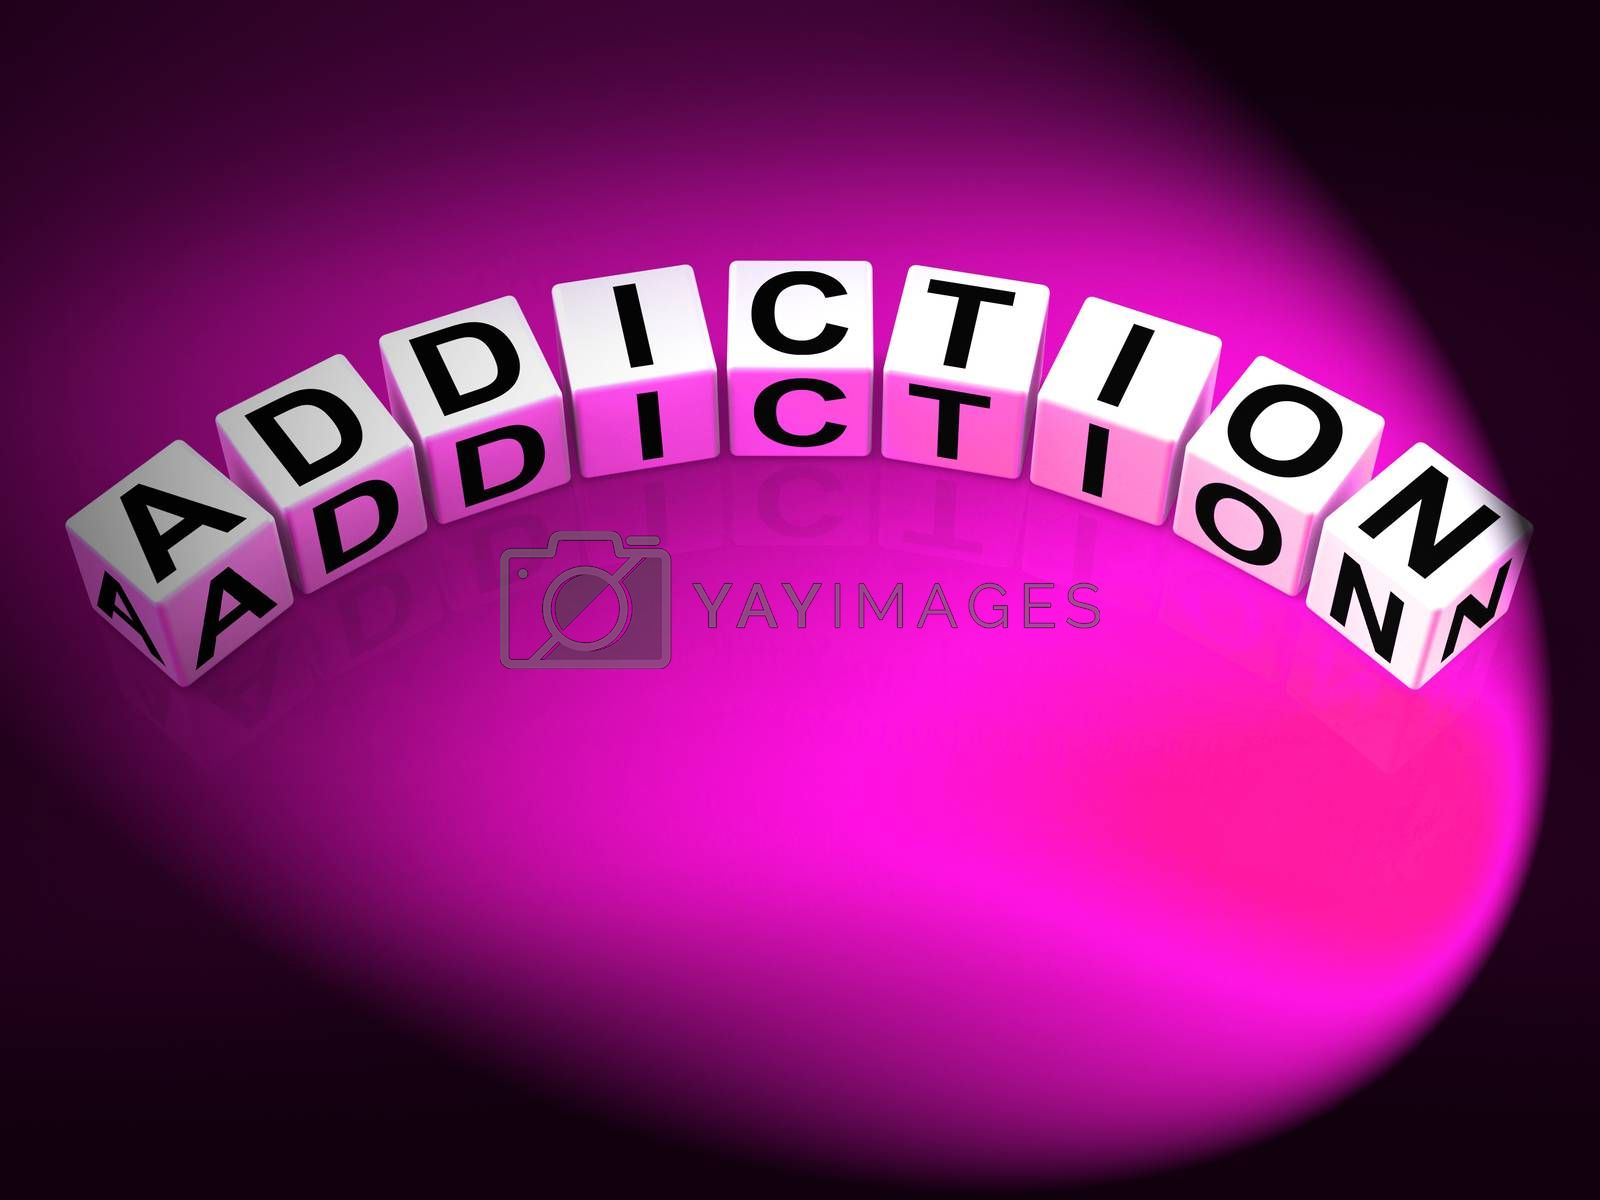 Addiction Dice Represent Obsession Dependence and Cravings by stuartmiles